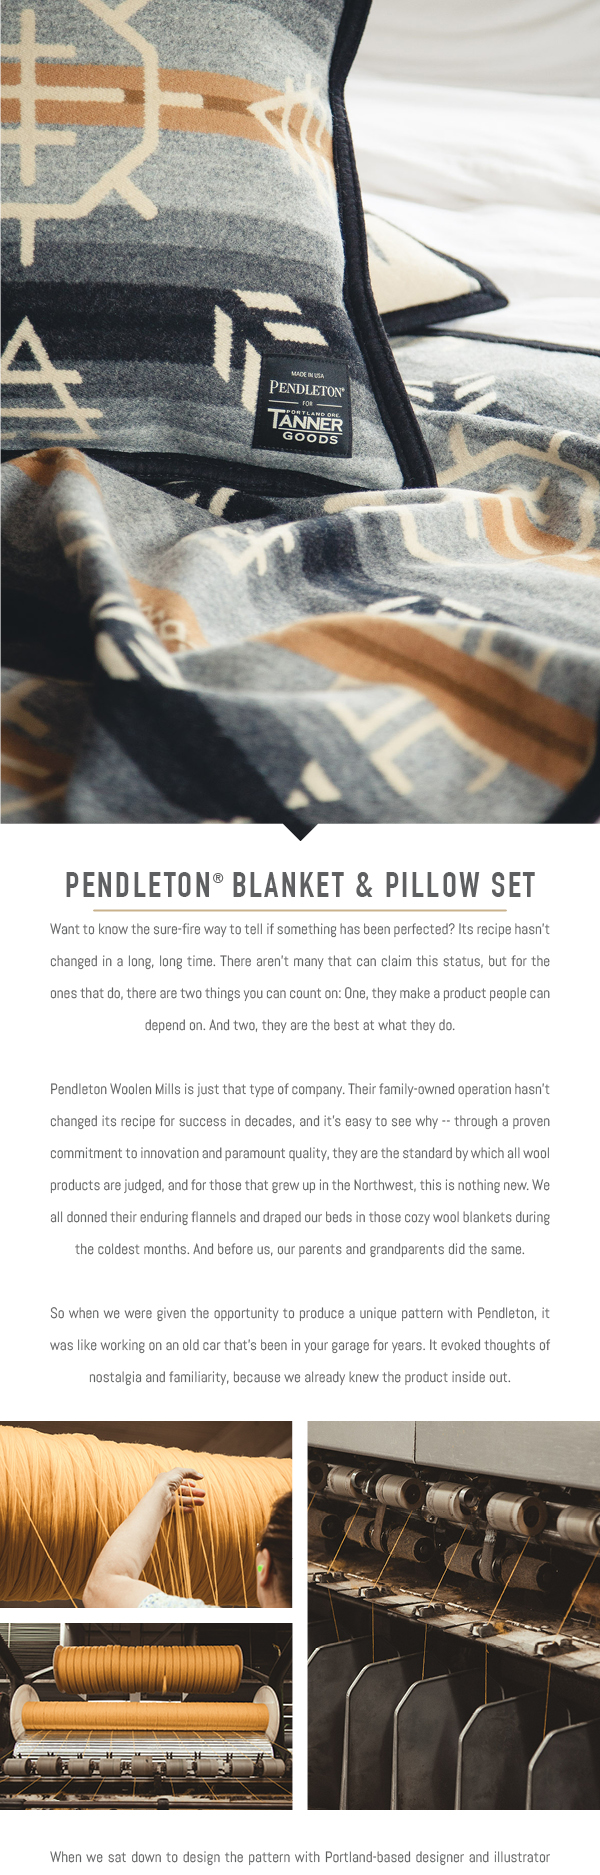 Pendleton for Tanner Goods